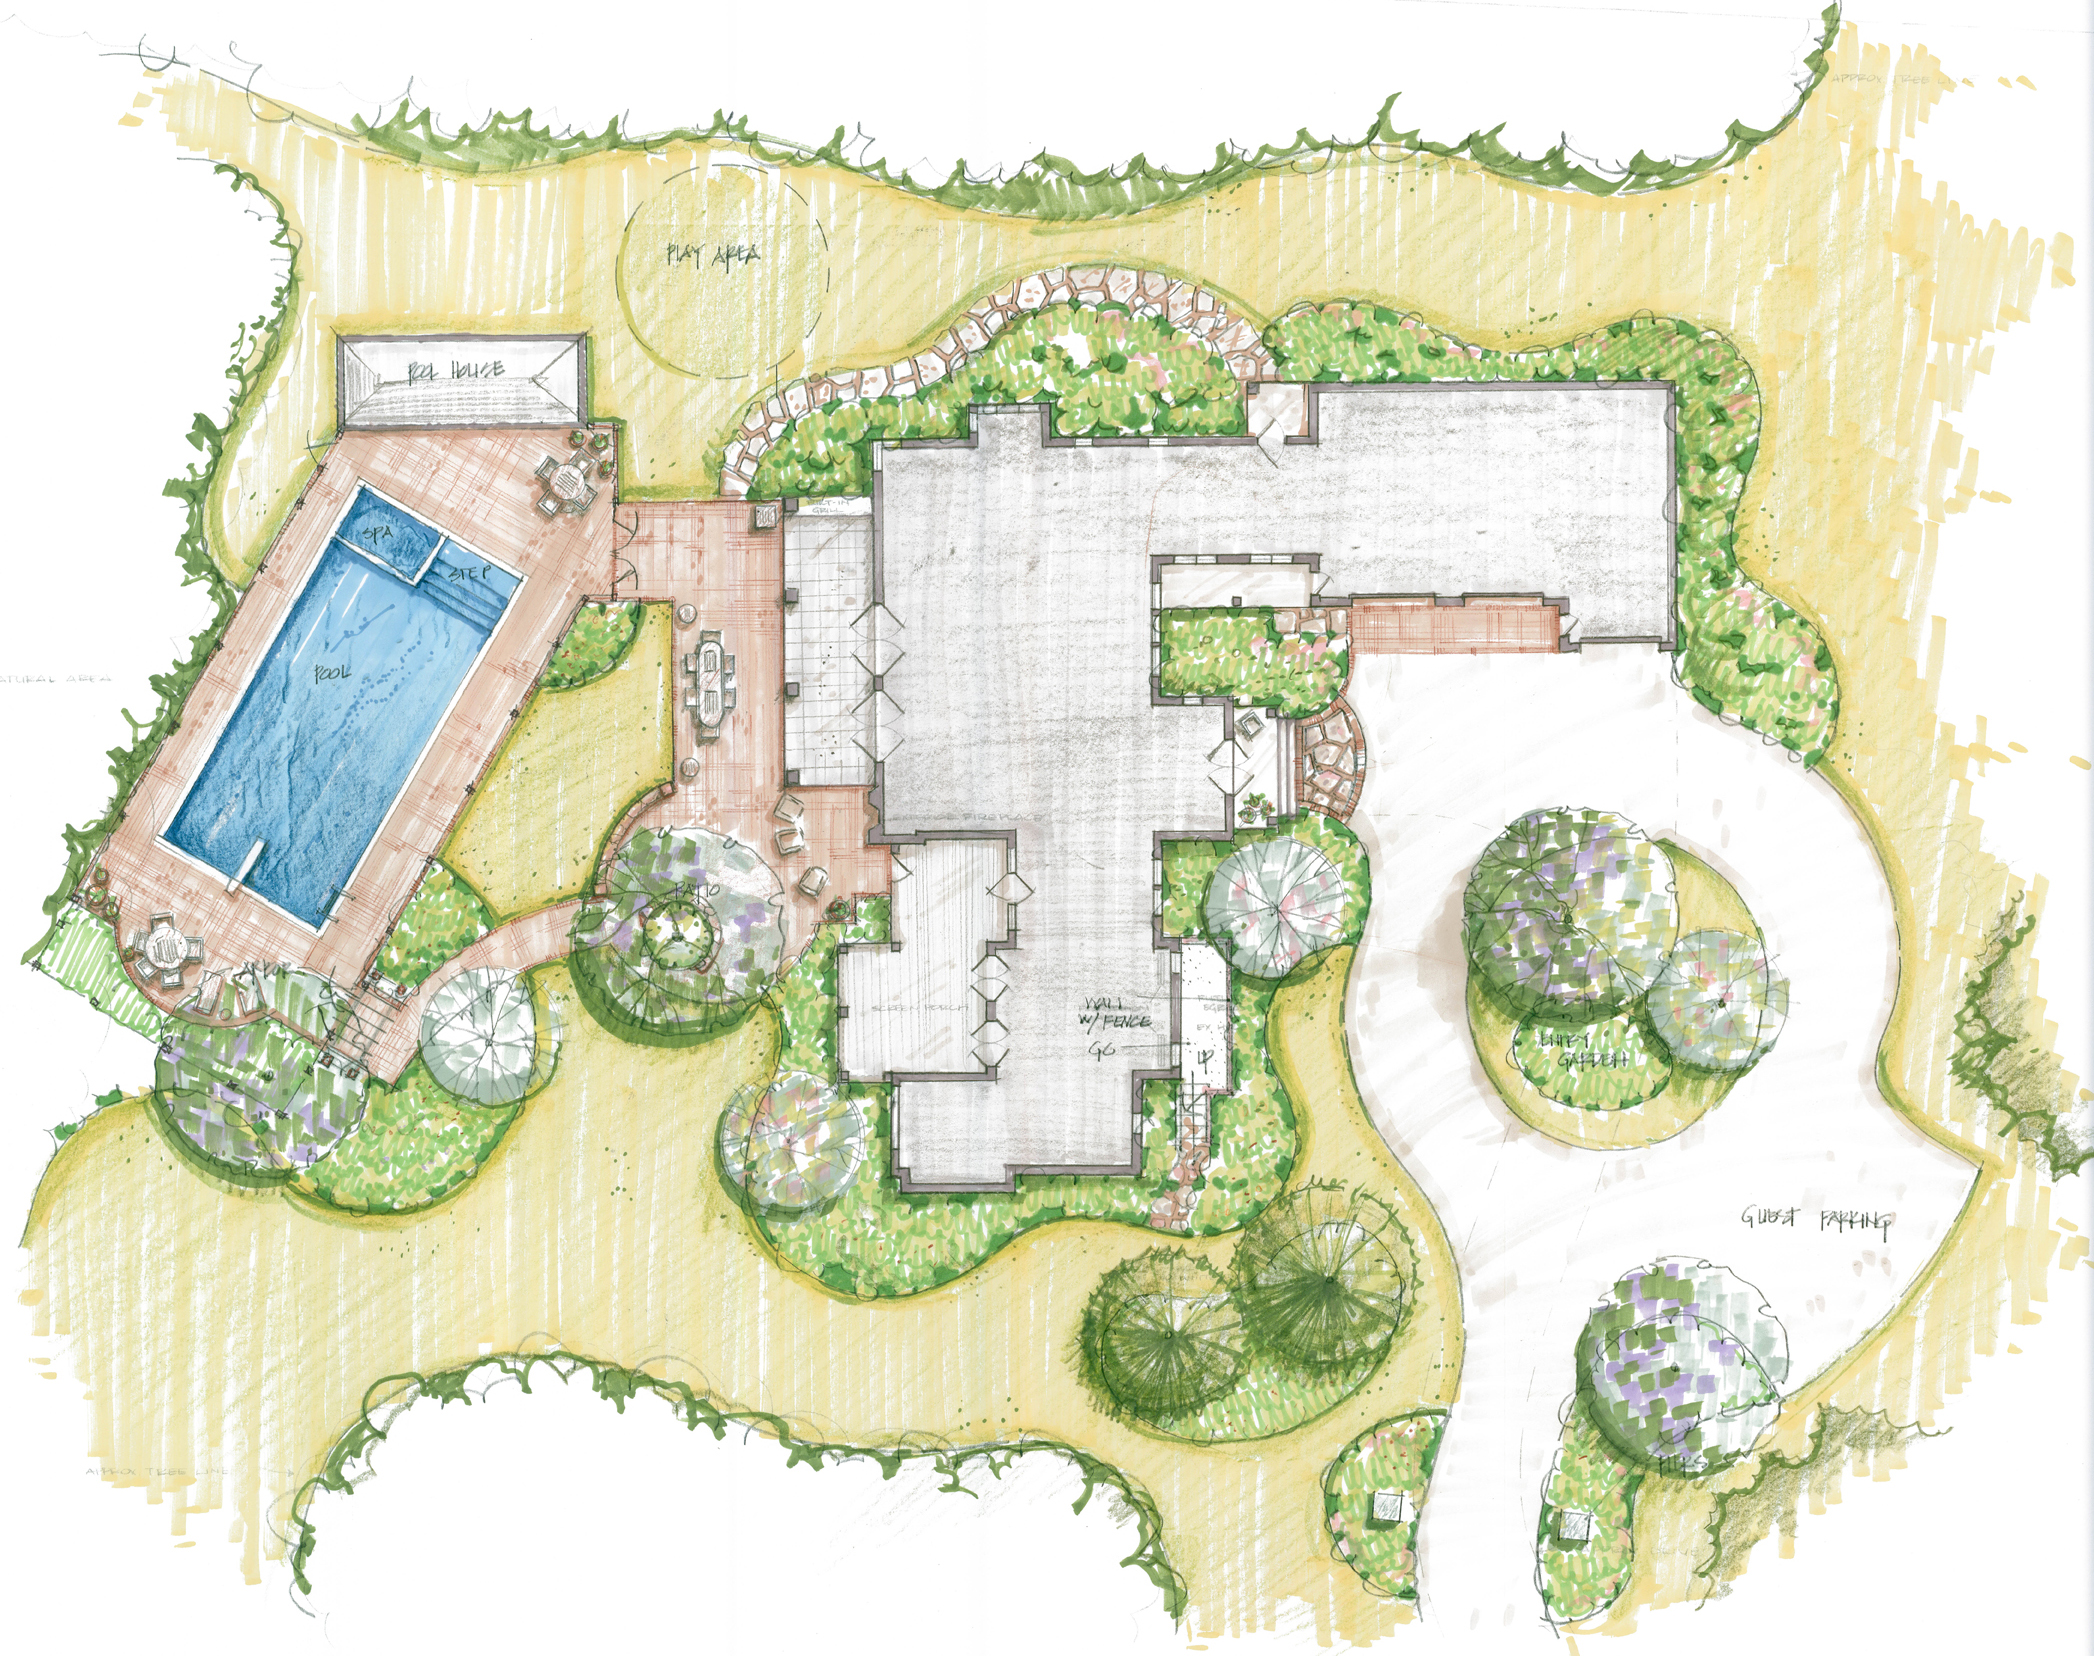 5 simple reasons to plan your landscape design landscape for Simple garden design plans